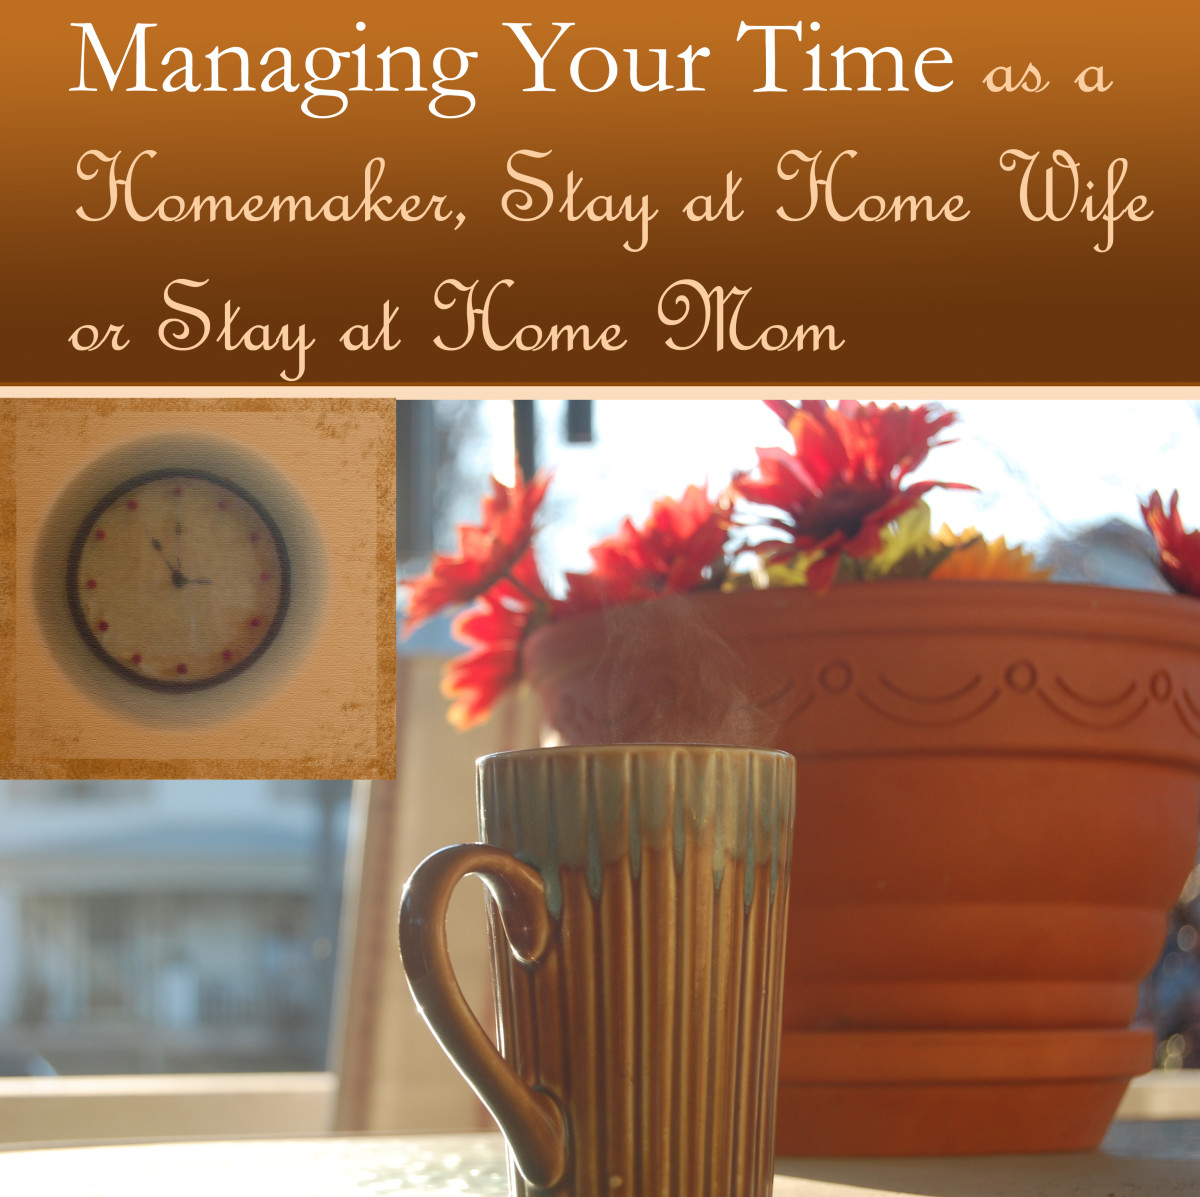 Managing Your Time as a Homemaker, Stay at Home Wife or Stay at Home Mom